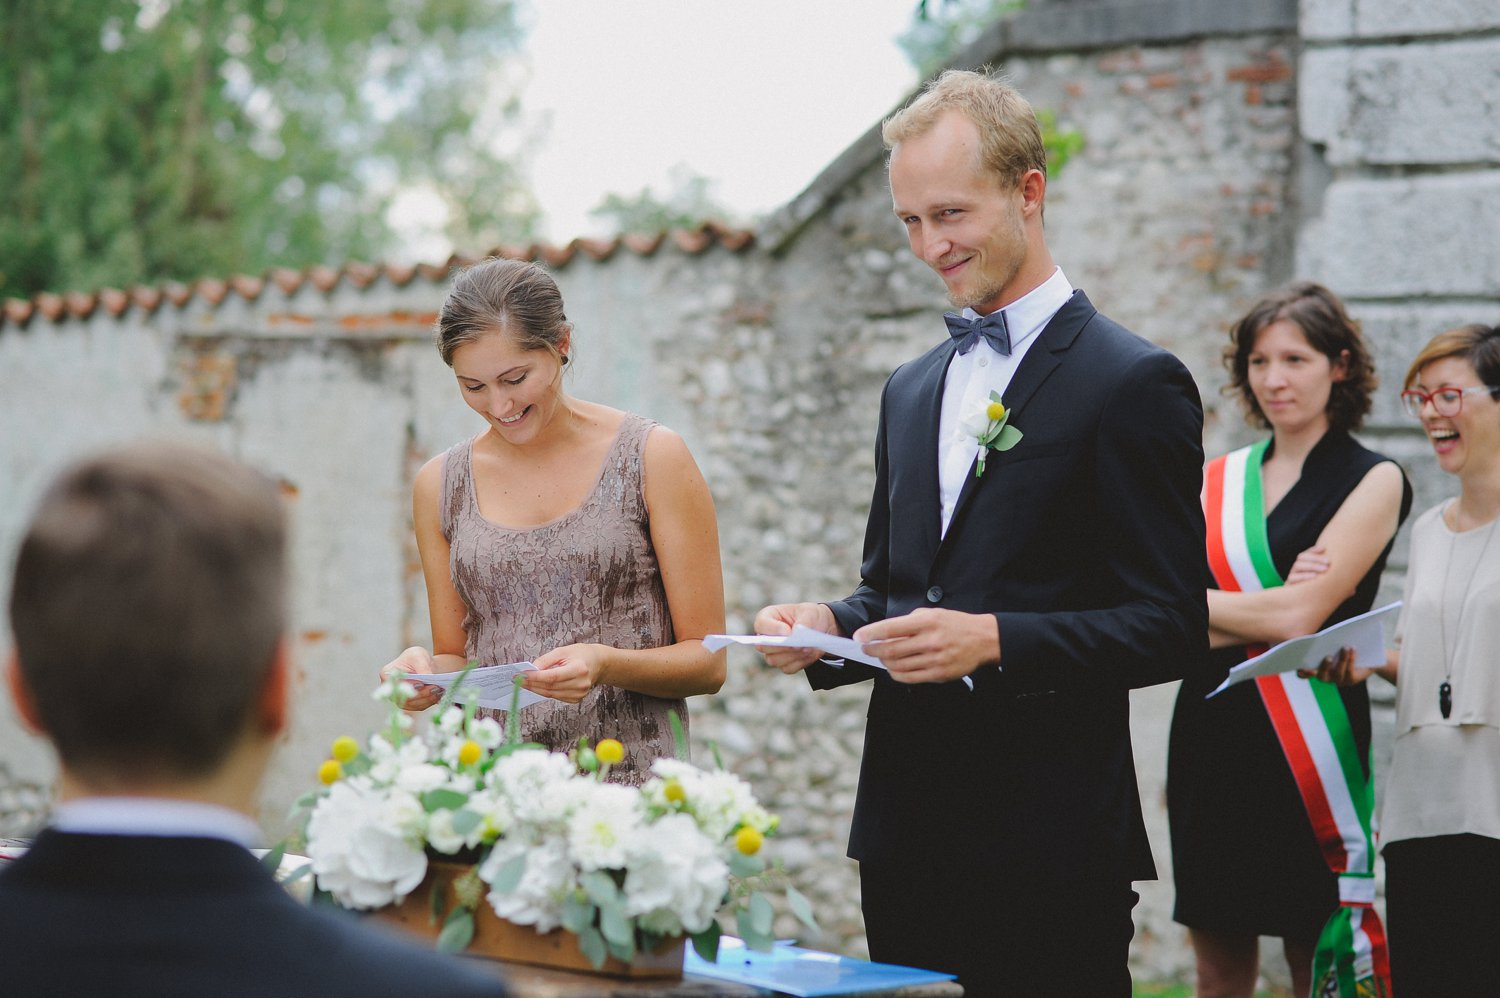 destination_wedding_italy_0101.jpg